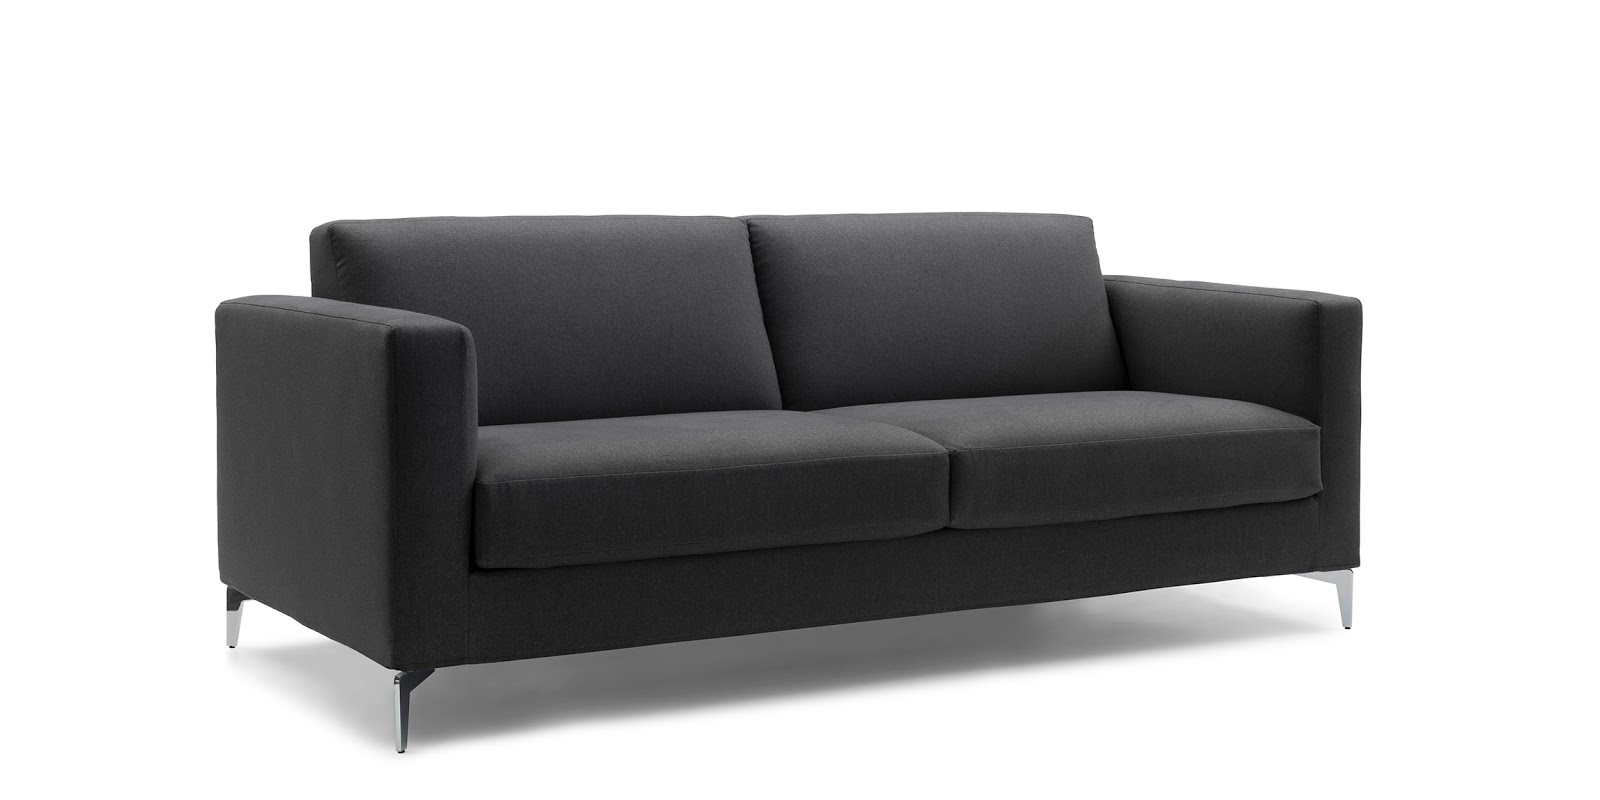 Sofa Modern Design Momentoitalia Italian Furniture Blog News From The 2016